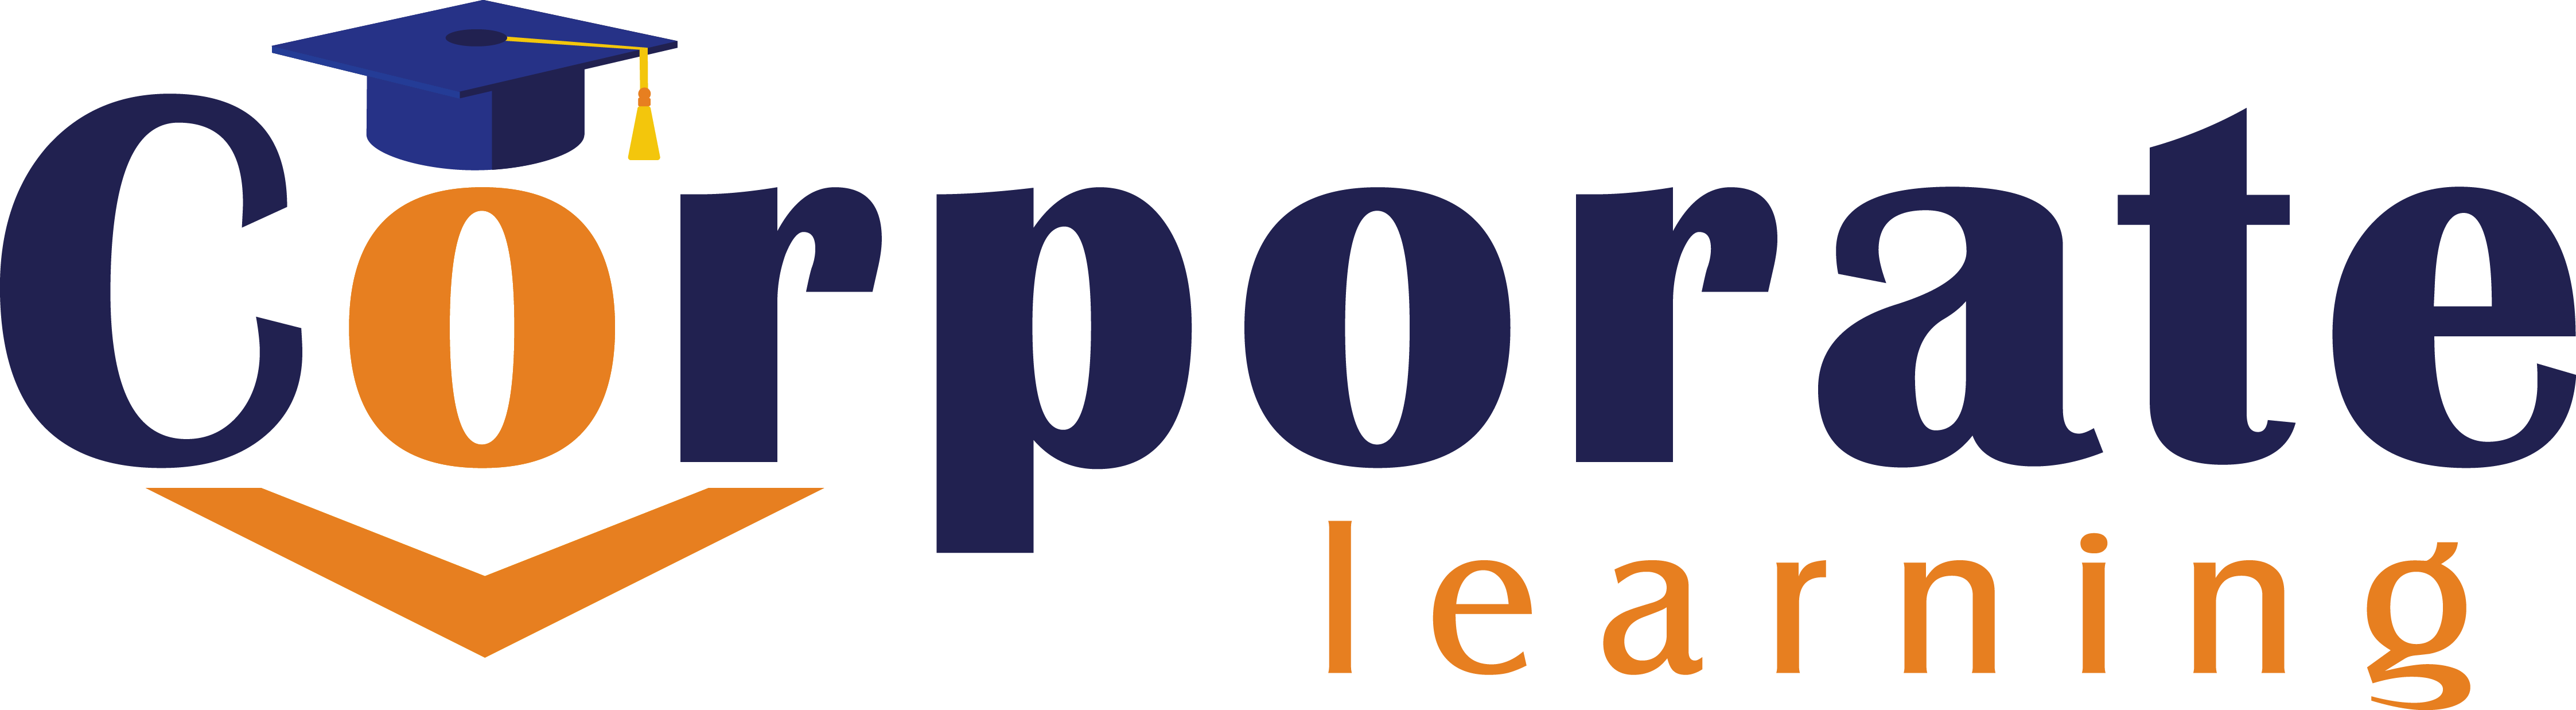 Corporate Learning Logo